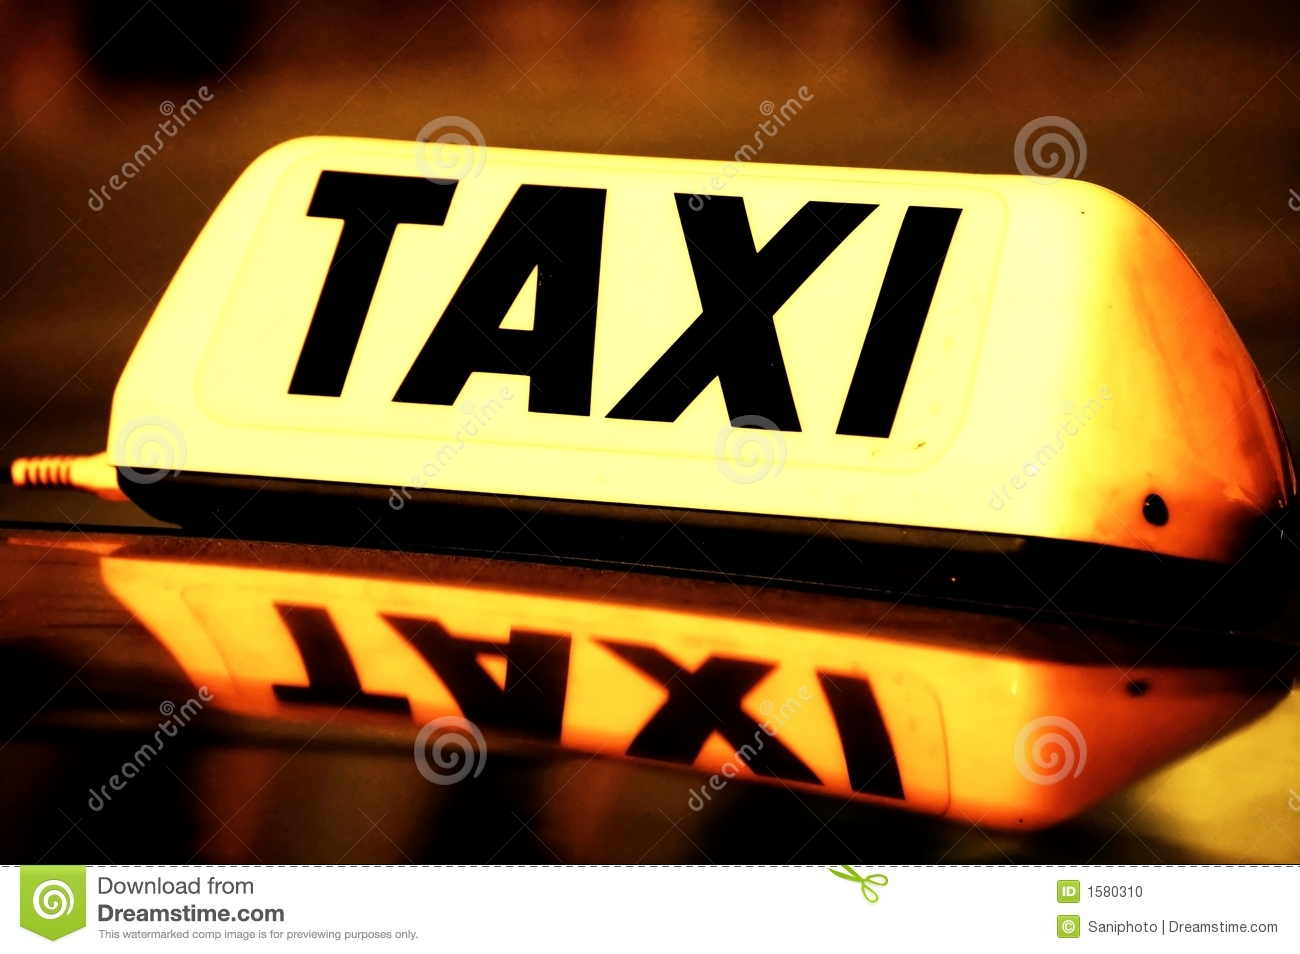 Taxi cab sign stock photo  Image of letters, transport - 1580310